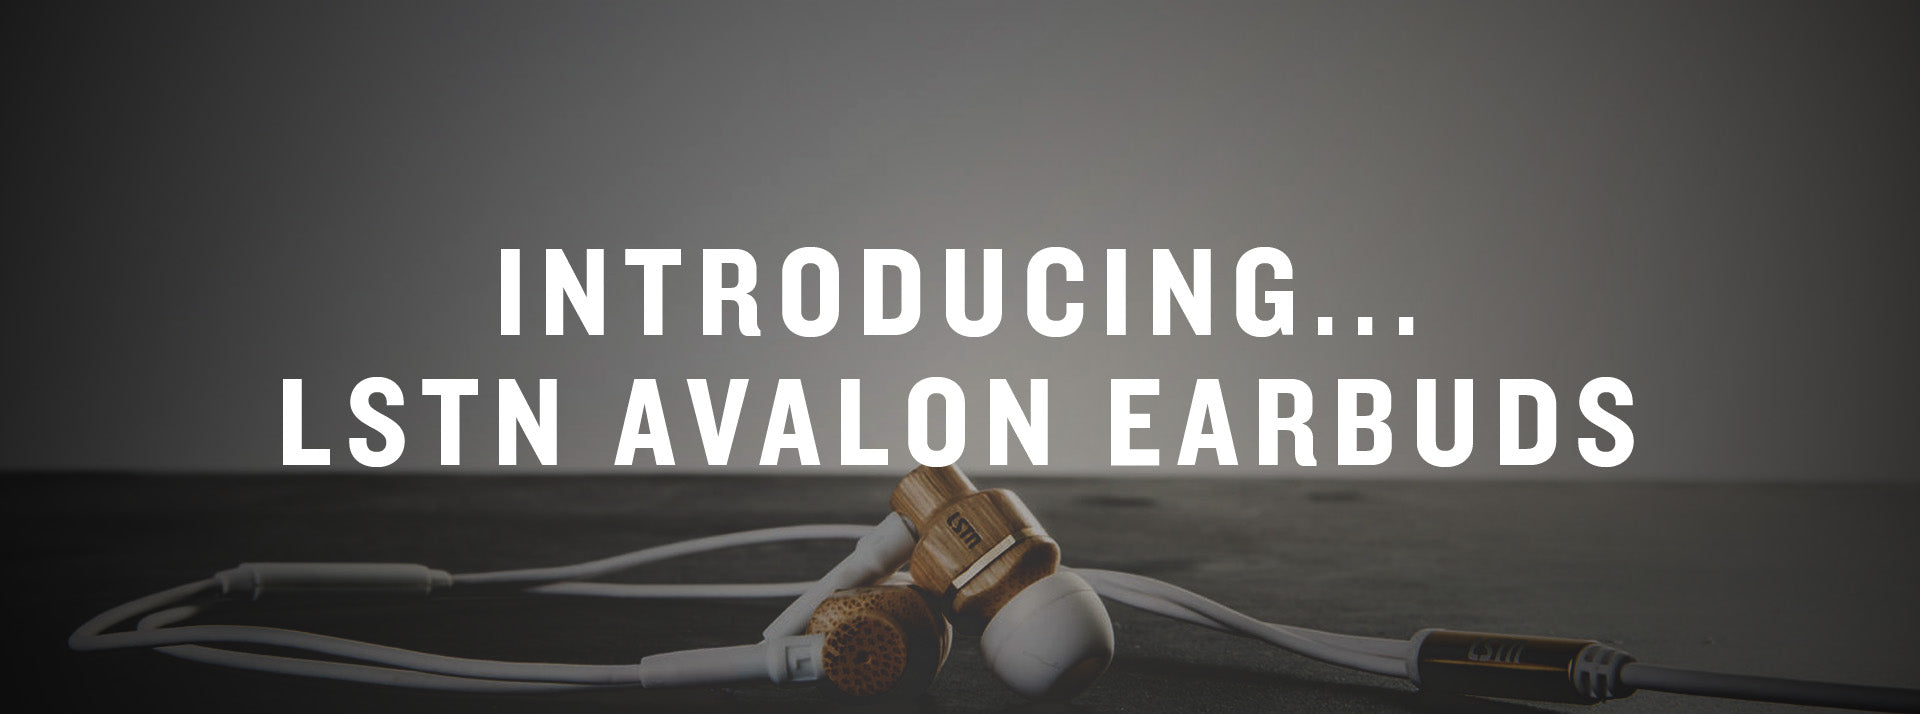 lstn avalon wood earbuds